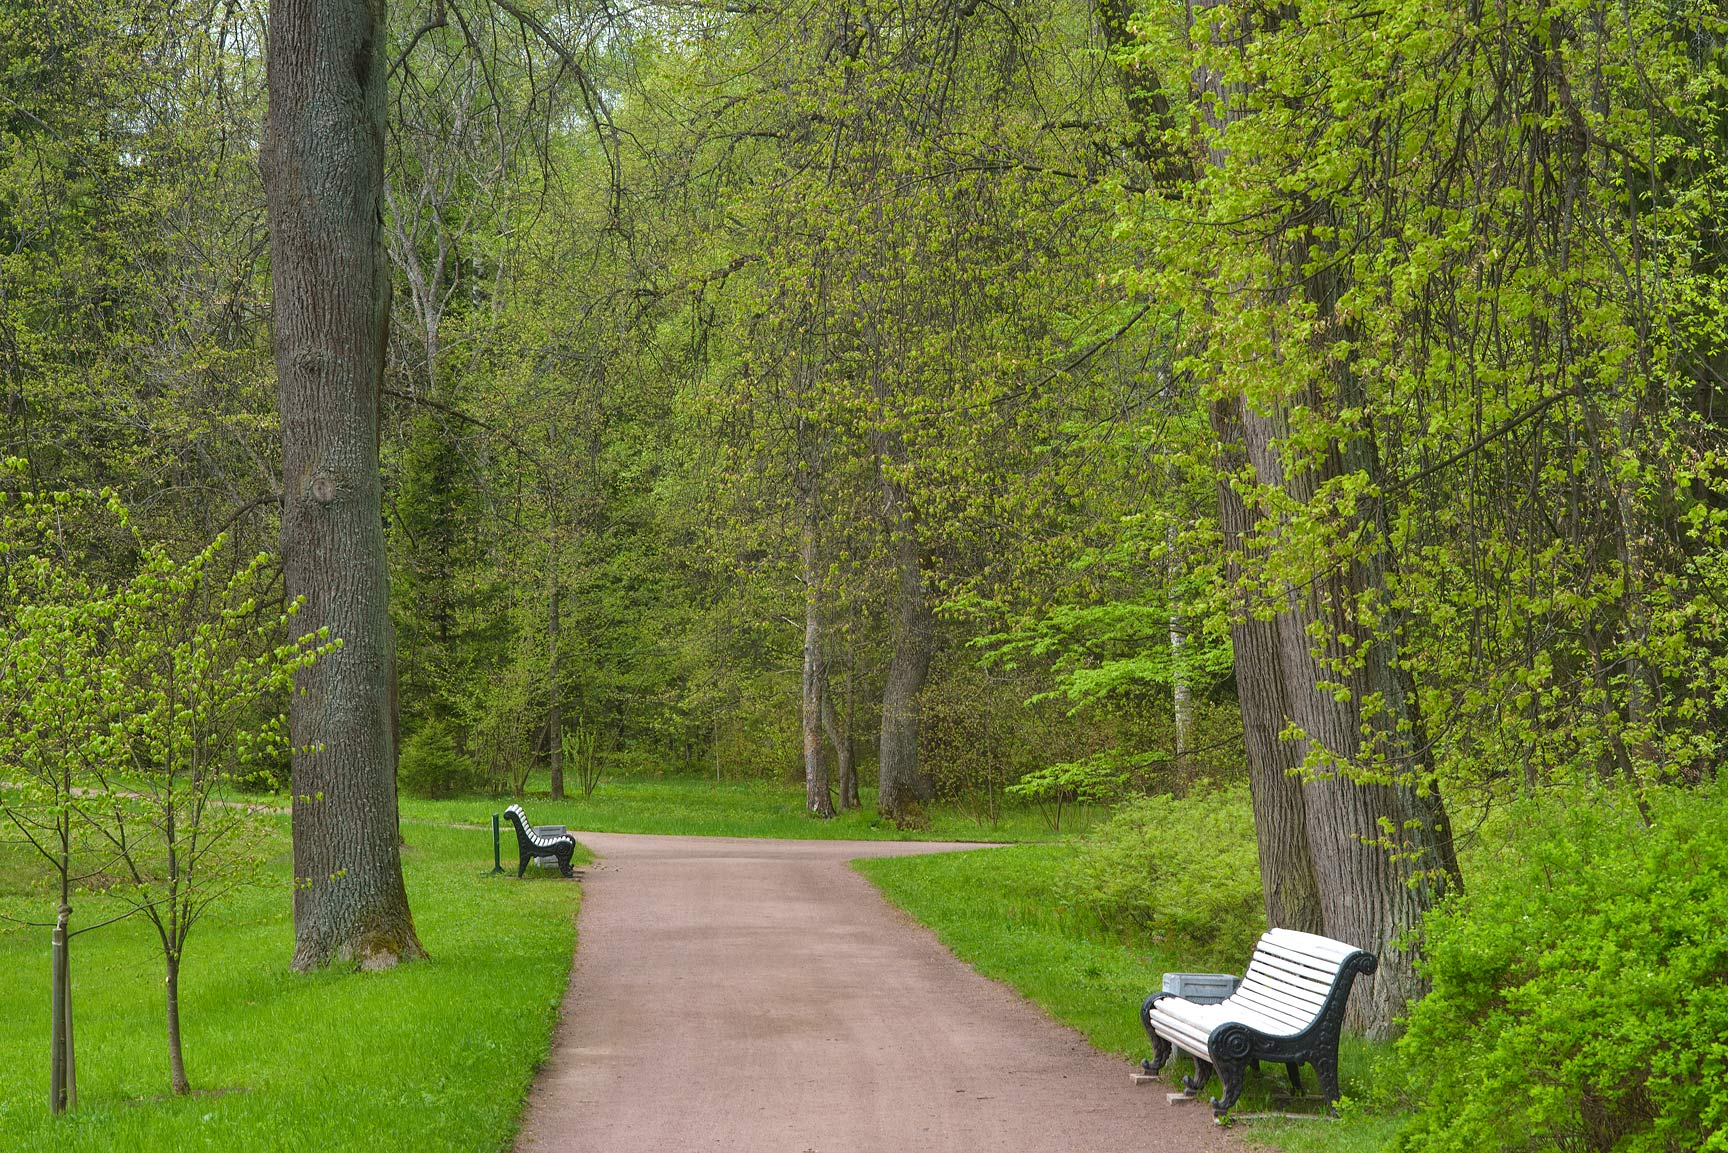 Benches in Upper Garden. Oranienbaum (Lomonosov), a suburb of St.Petersburg, Russia